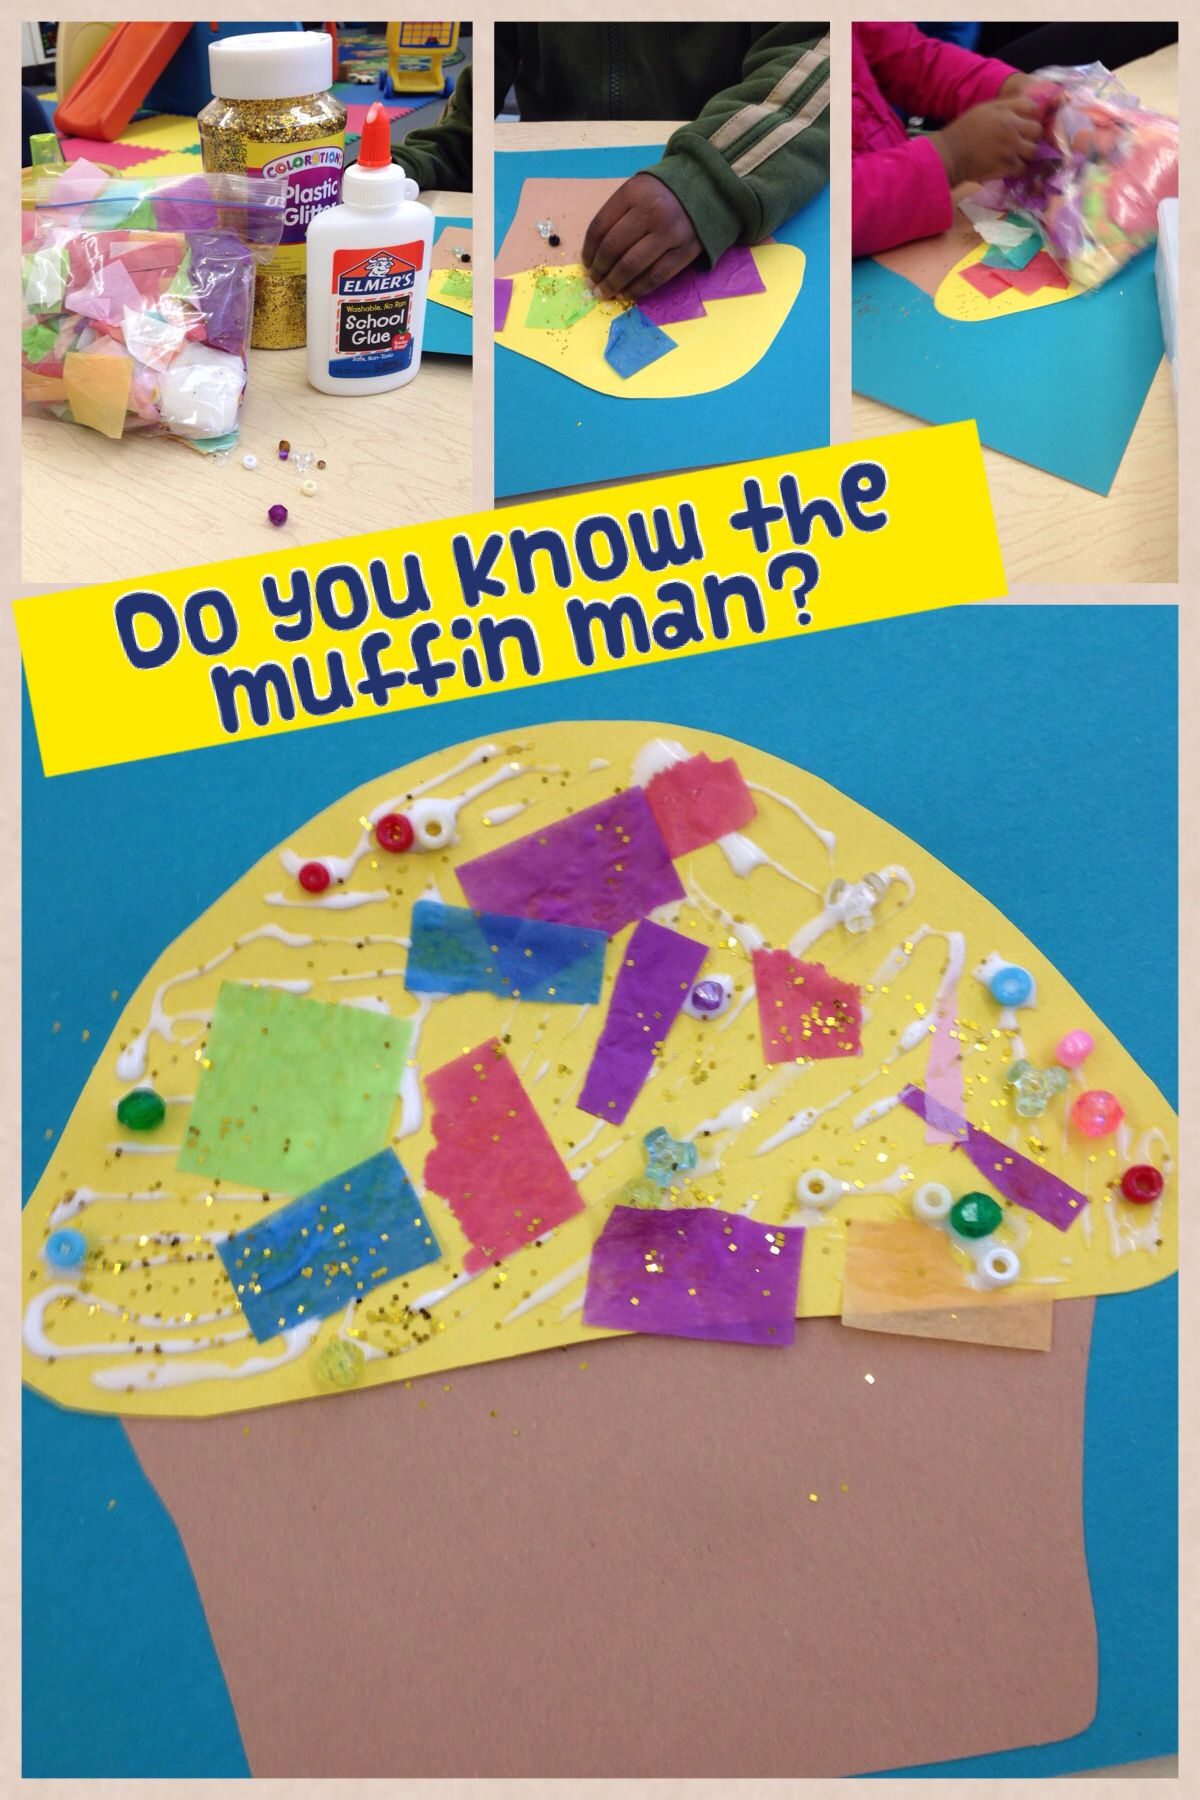 We Decorated A Paper Muffin For Our Nursery Rhyme Theme